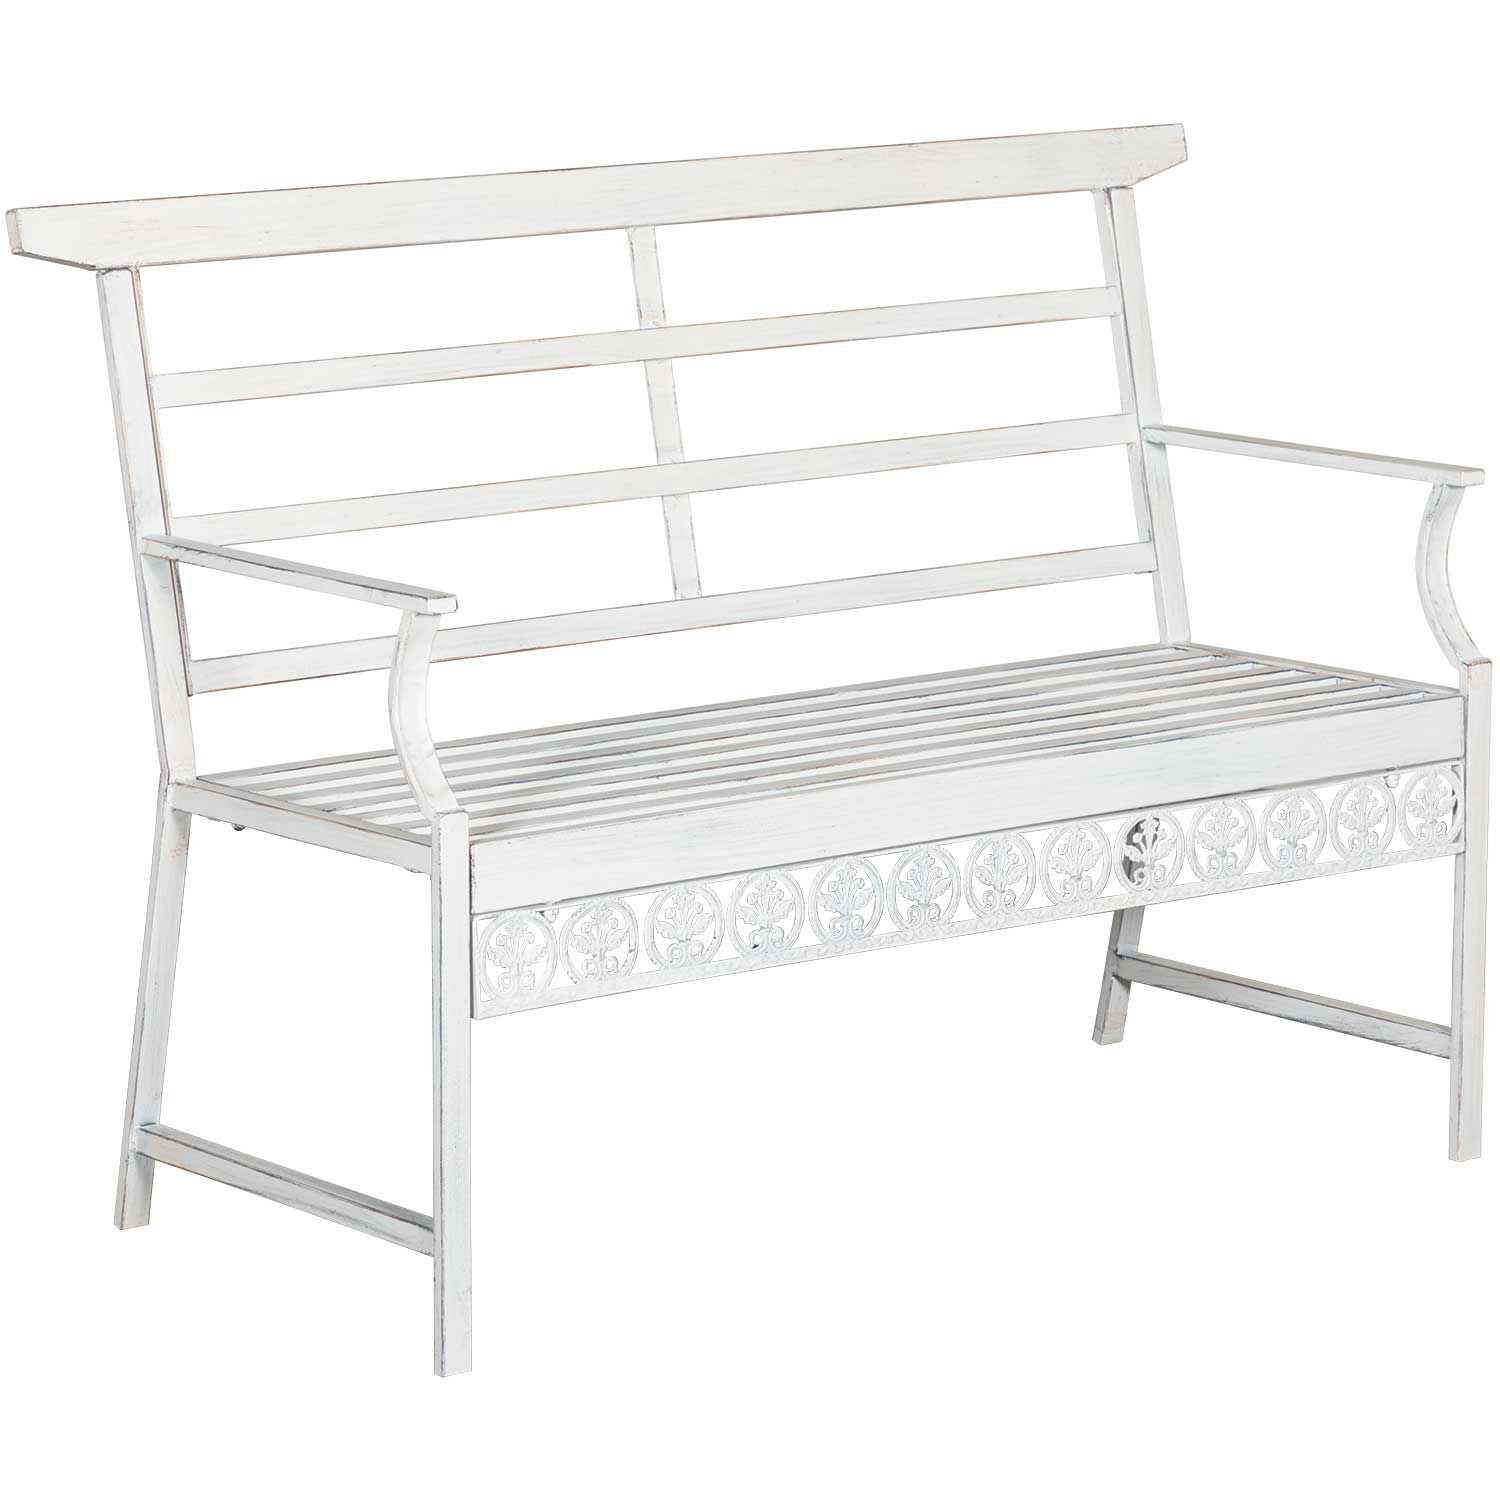 Magnificent White Metal Sitting Bench Beatyapartments Chair Design Images Beatyapartmentscom